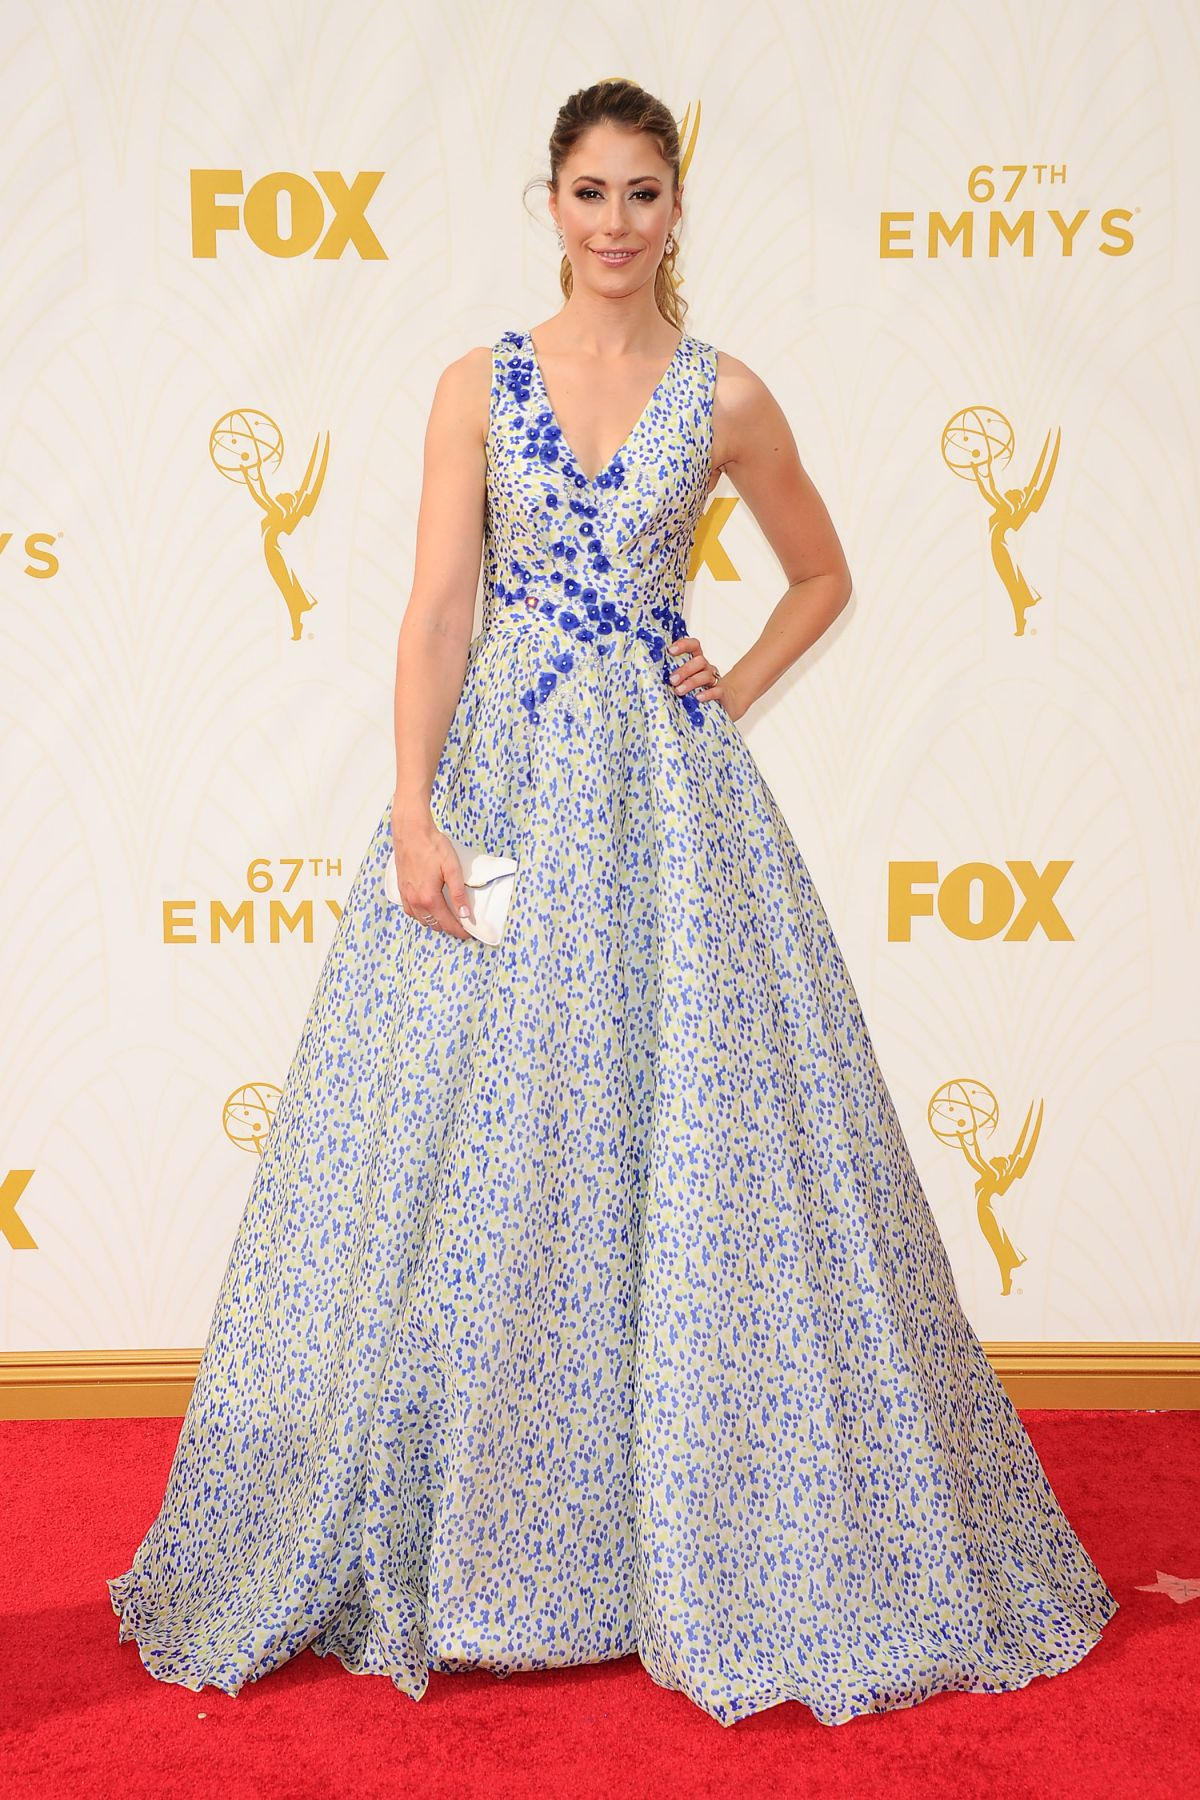 AMANDA CREW at 2015 Emmy Awards in Los Angeles 09/20/2015